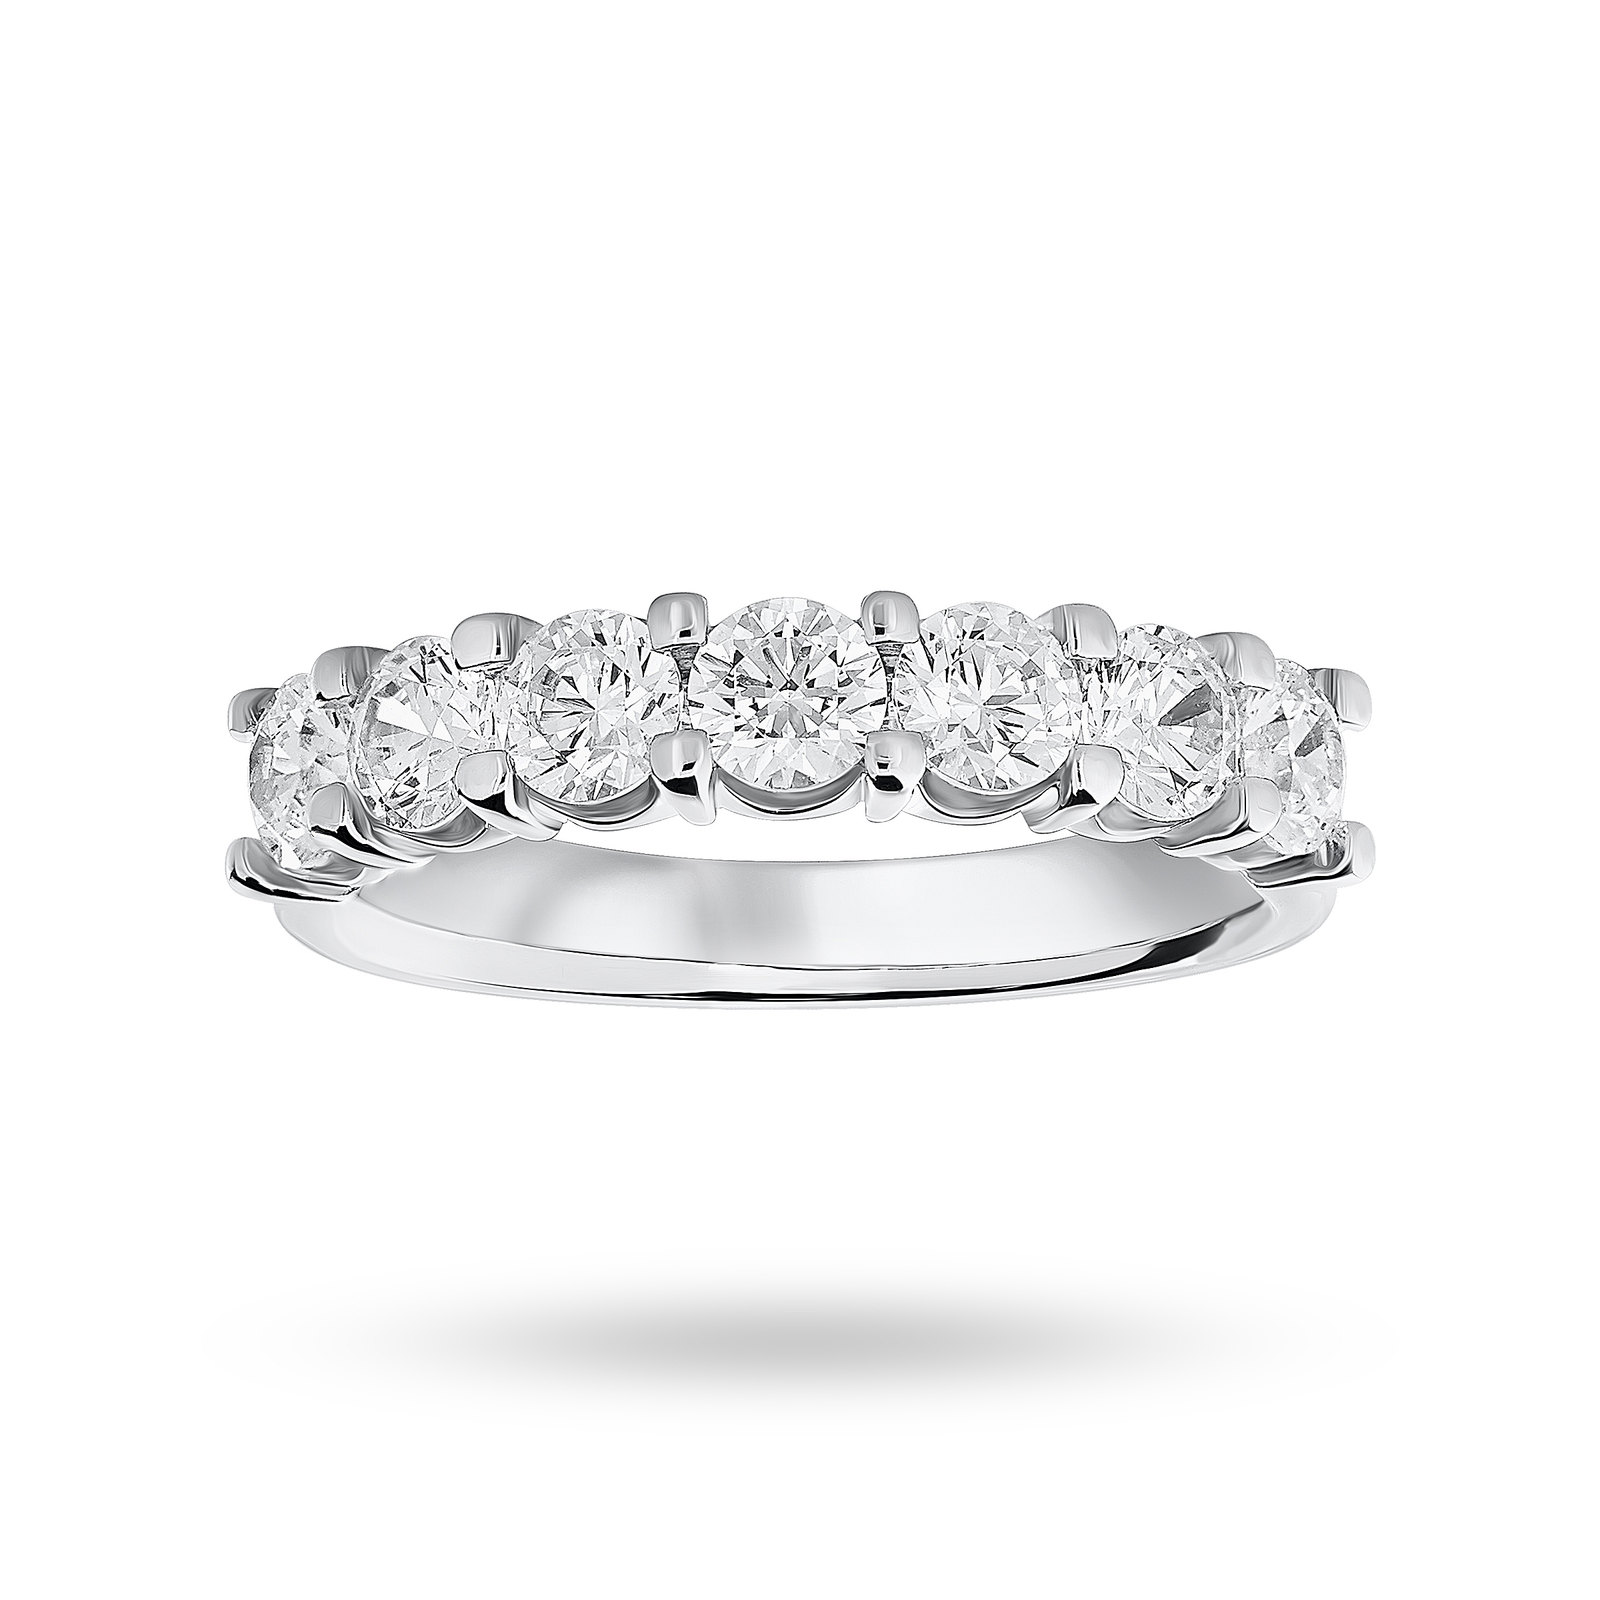 Platinum 1.30 Carat Brilliant Cut Under Bezel Half Eternity Ring